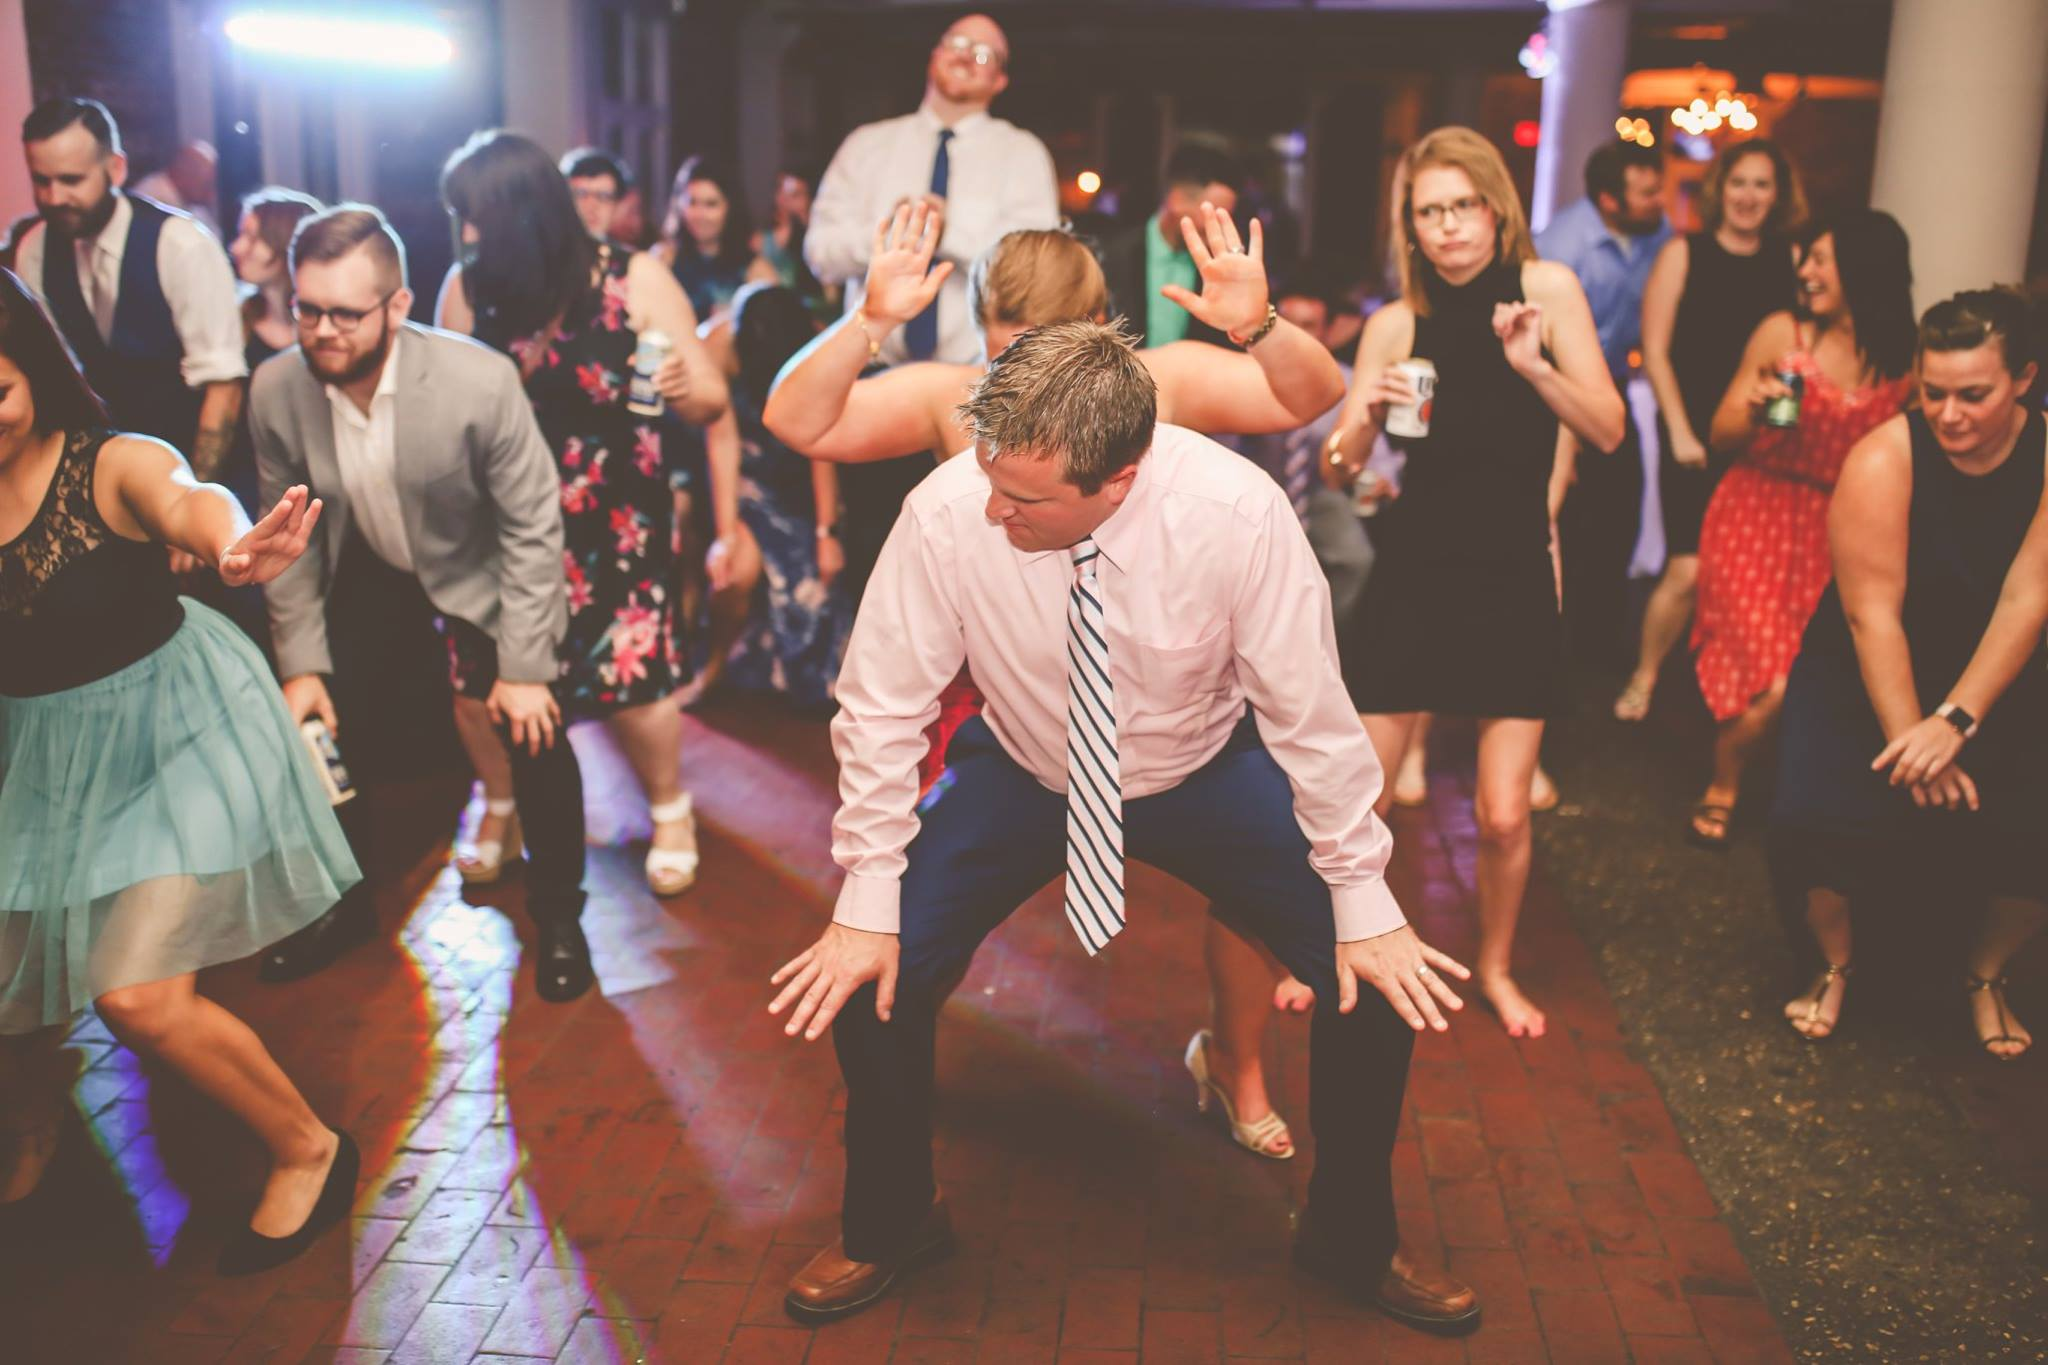 EVERY RECEPTION IS UNIQUE…BUT WE ALL DANCE!